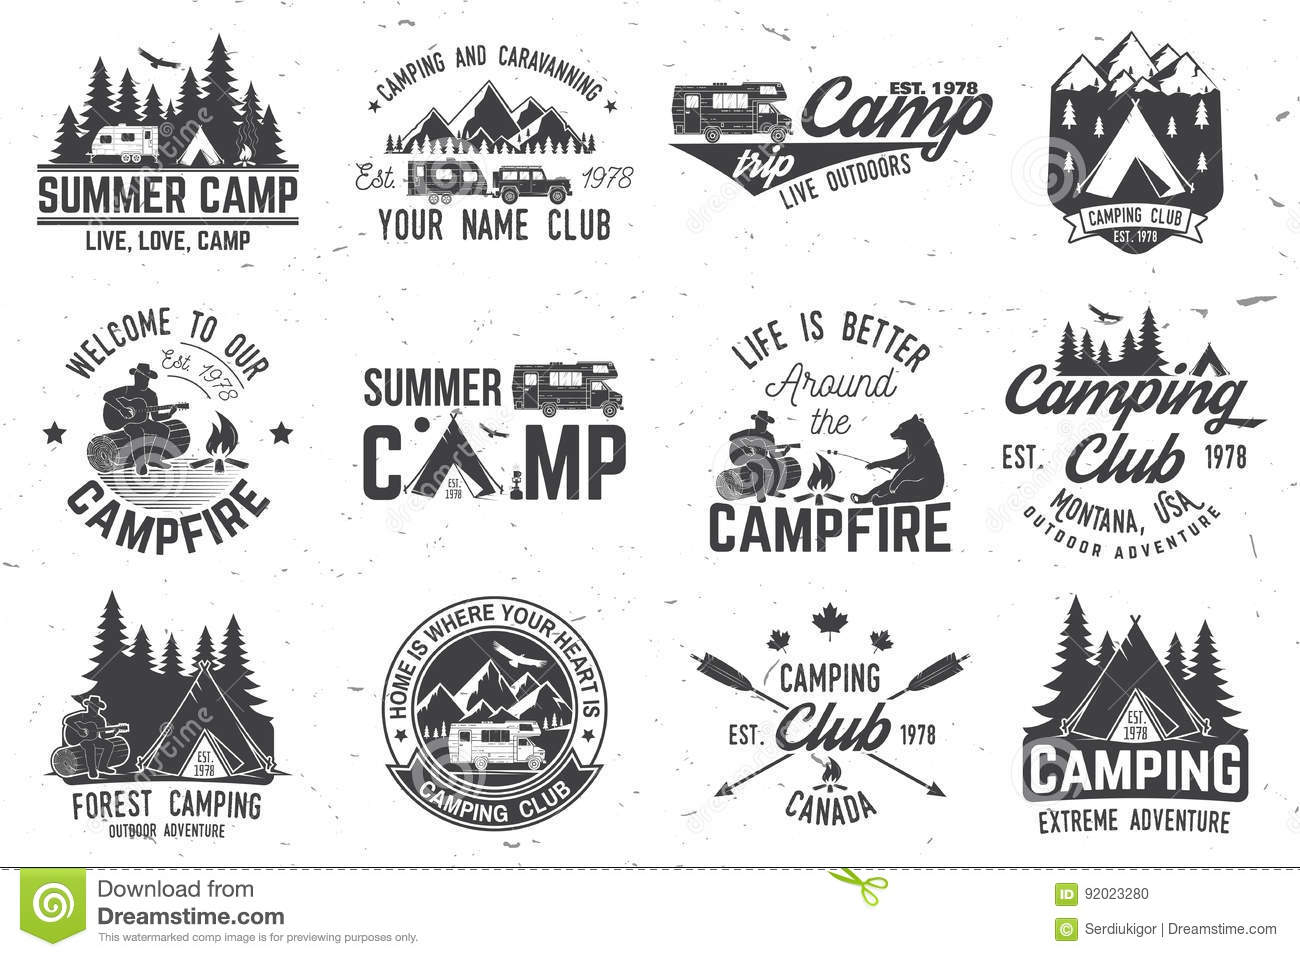 Summer Camp Vector Illustration Concept For Shirt Or